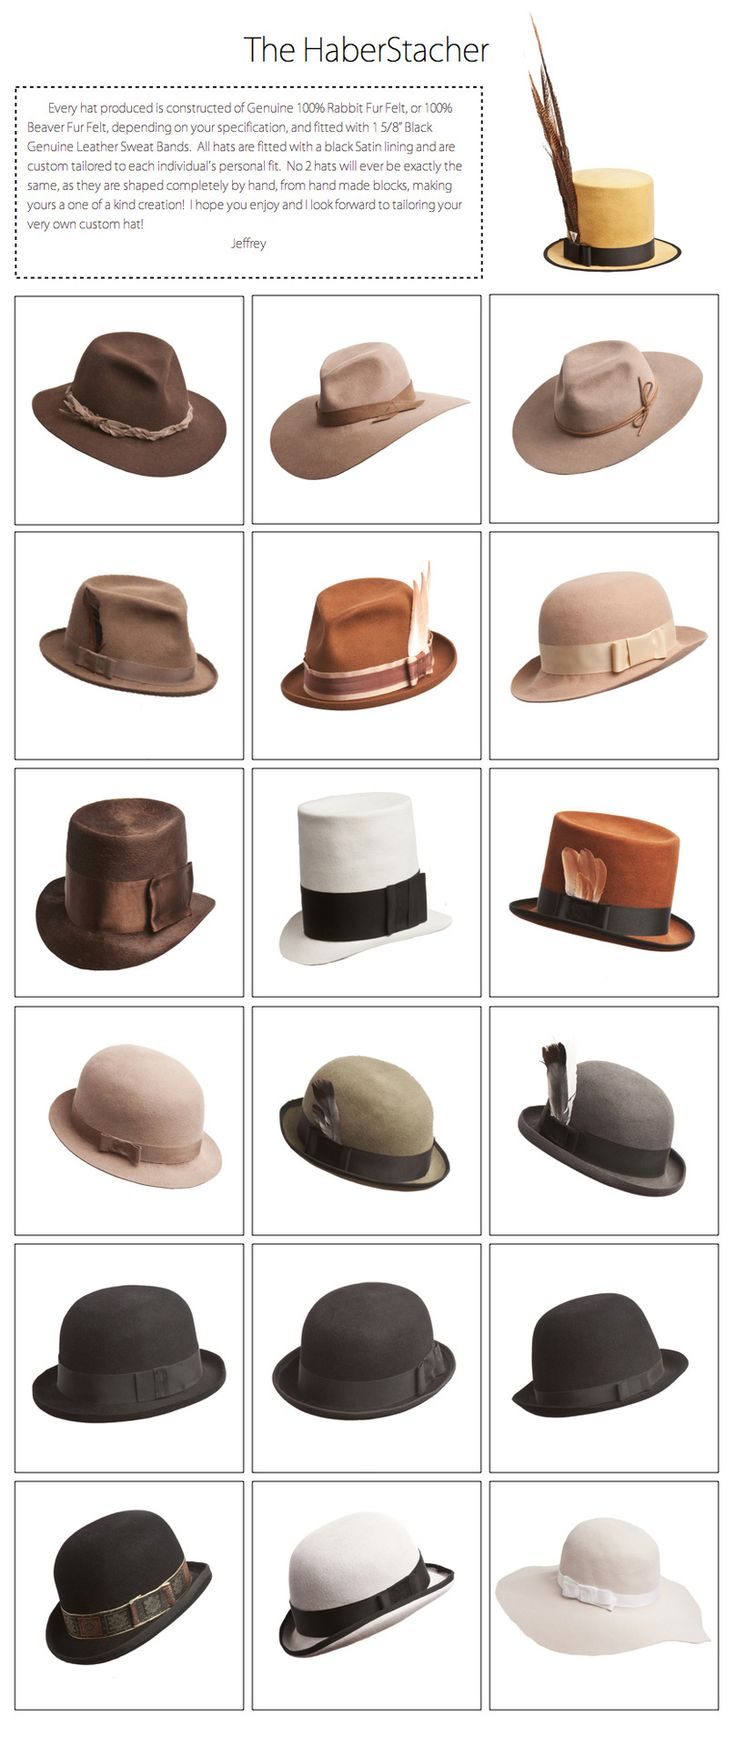 Style of hats